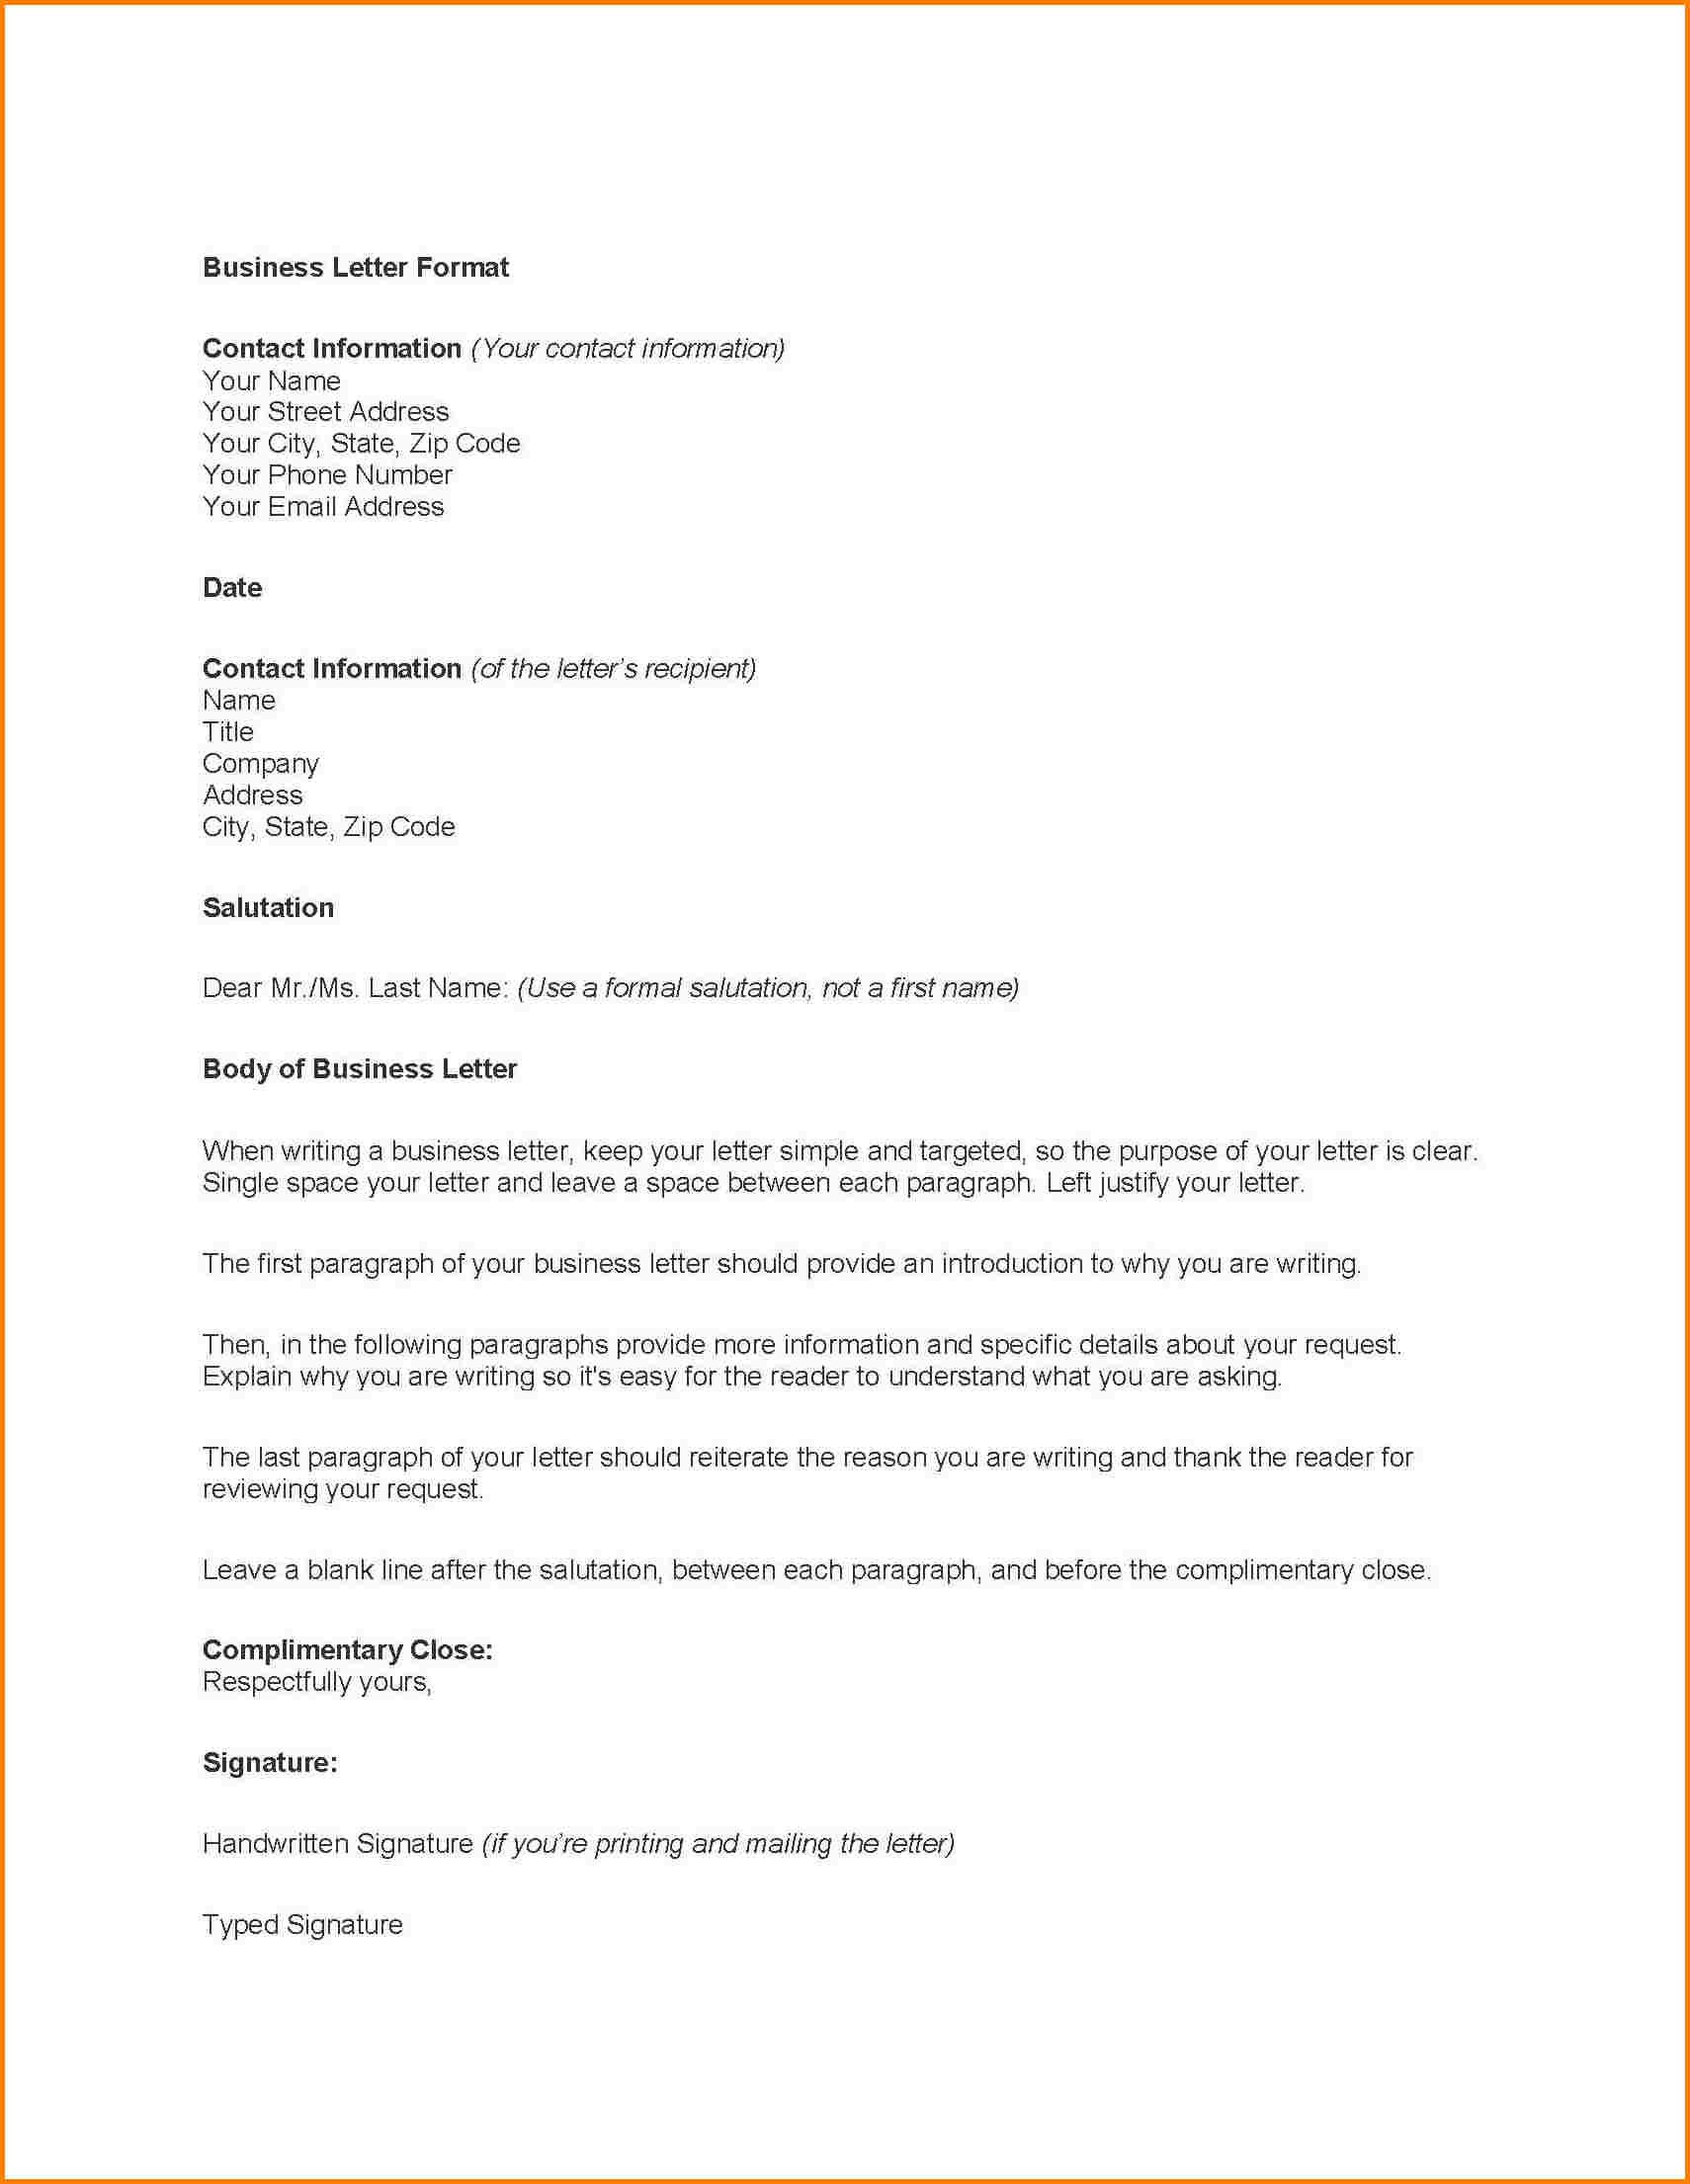 Template business letter quote templates ftwanmfg caption home template business letter quote templates ftwanmfg caption spiritdancerdesigns Images